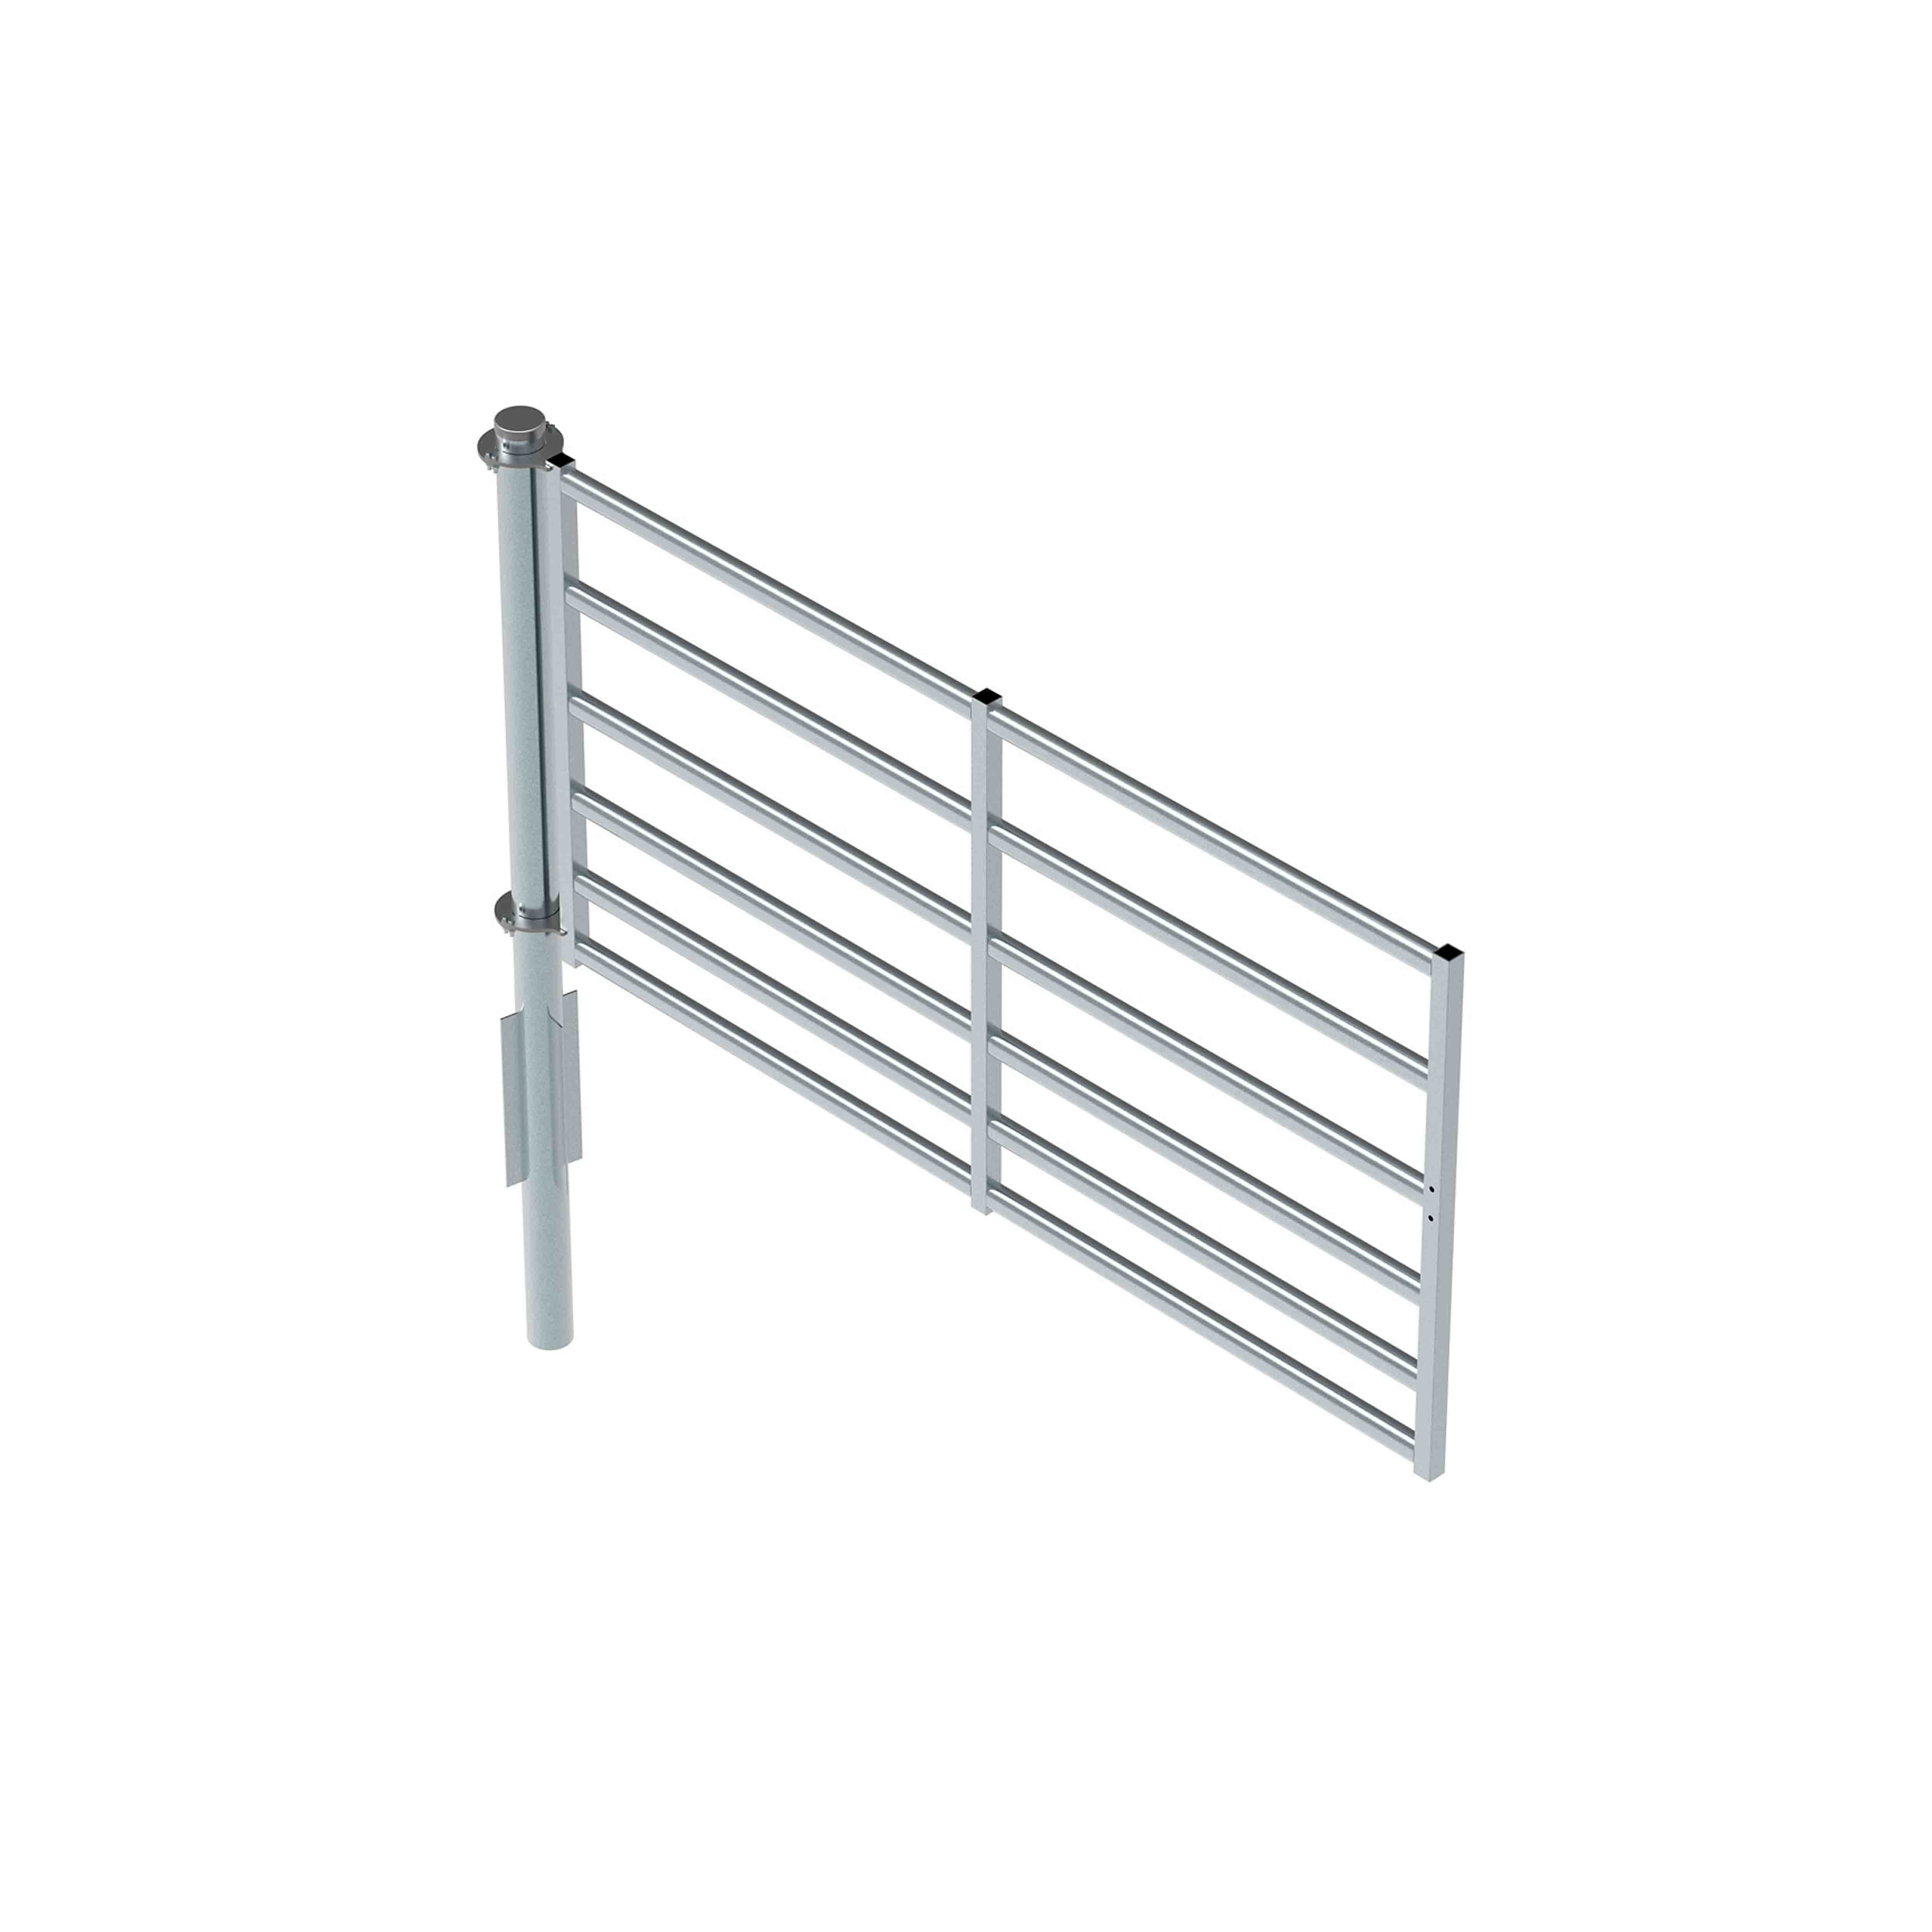 360° Pole with 2.8m x 1400H 6 rail Gate